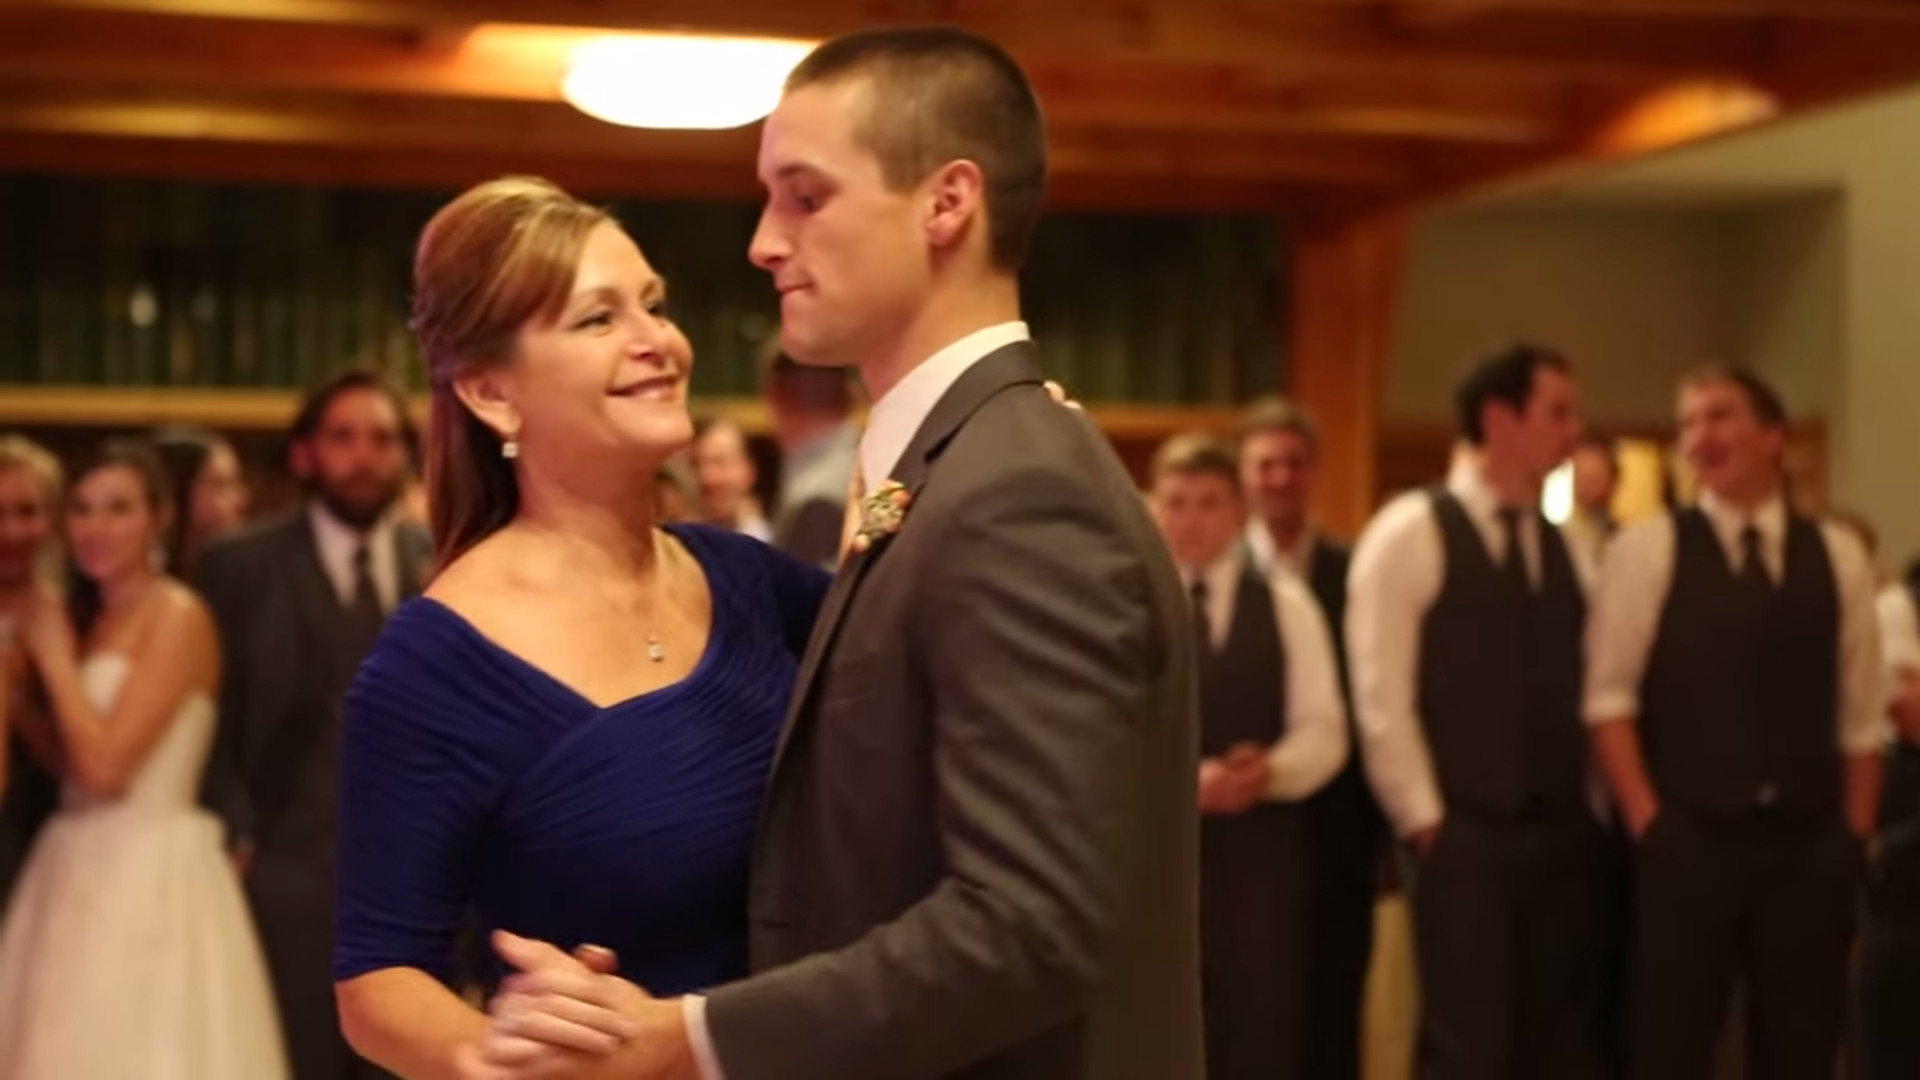 Mother Son Wedding Dance.Mother Son Wedding Dance Gives Guests One Special Surprise I Love